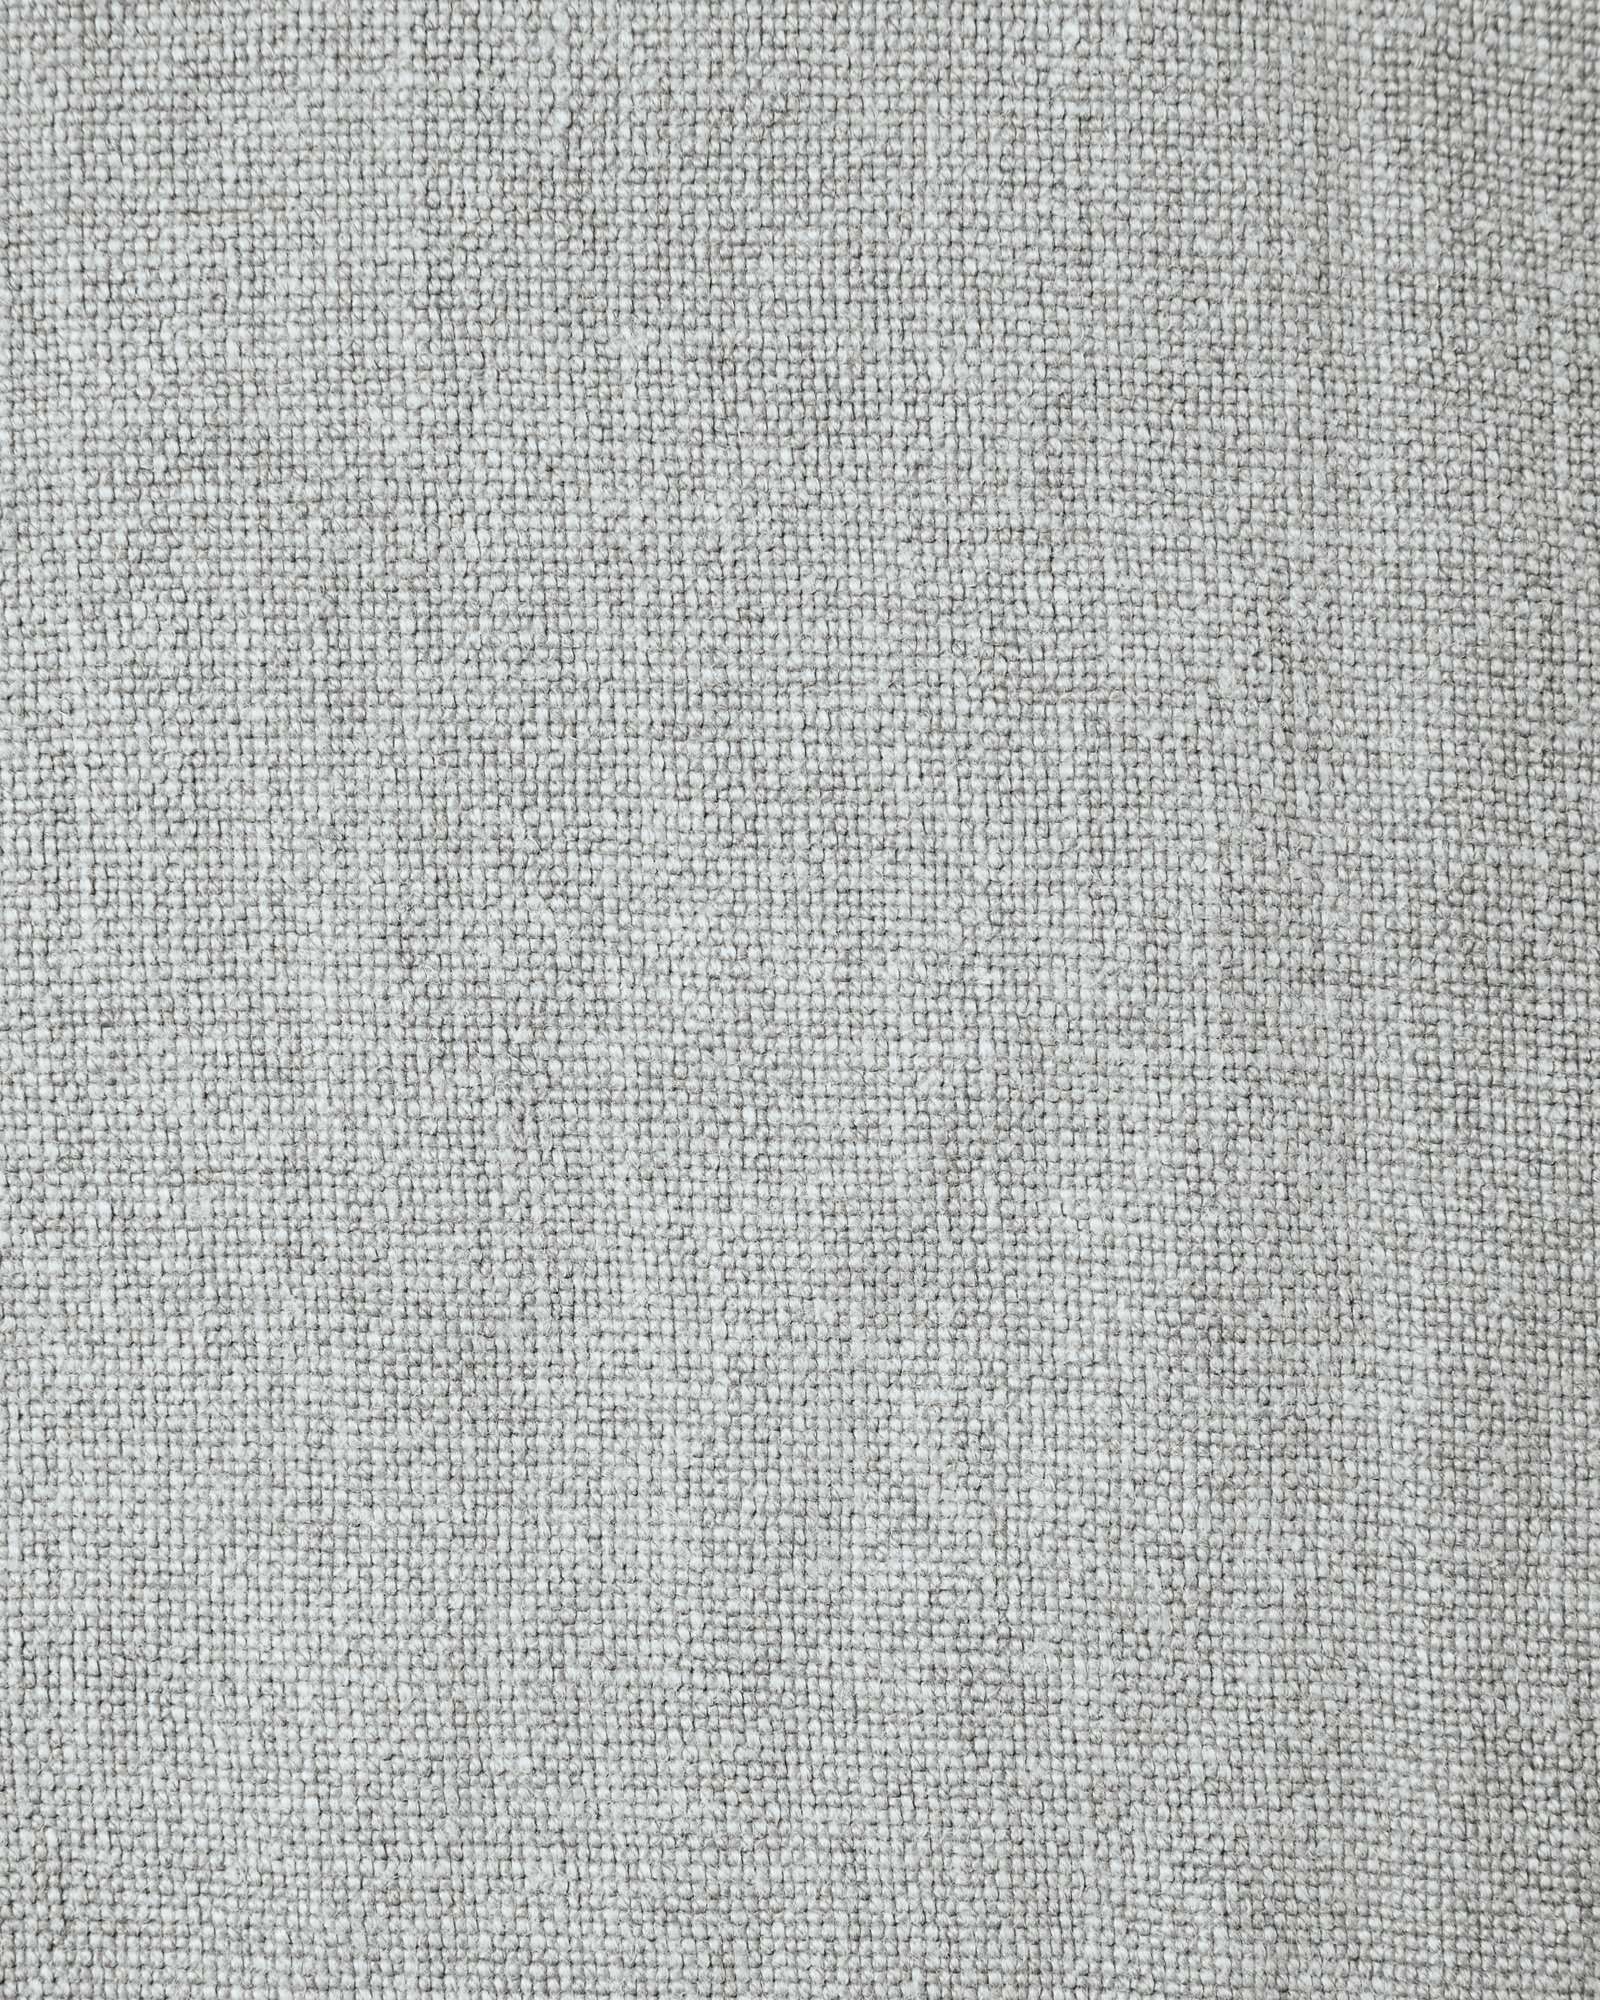 Upholstery Fabric Guide for White Woven Fabric Texture  103wja